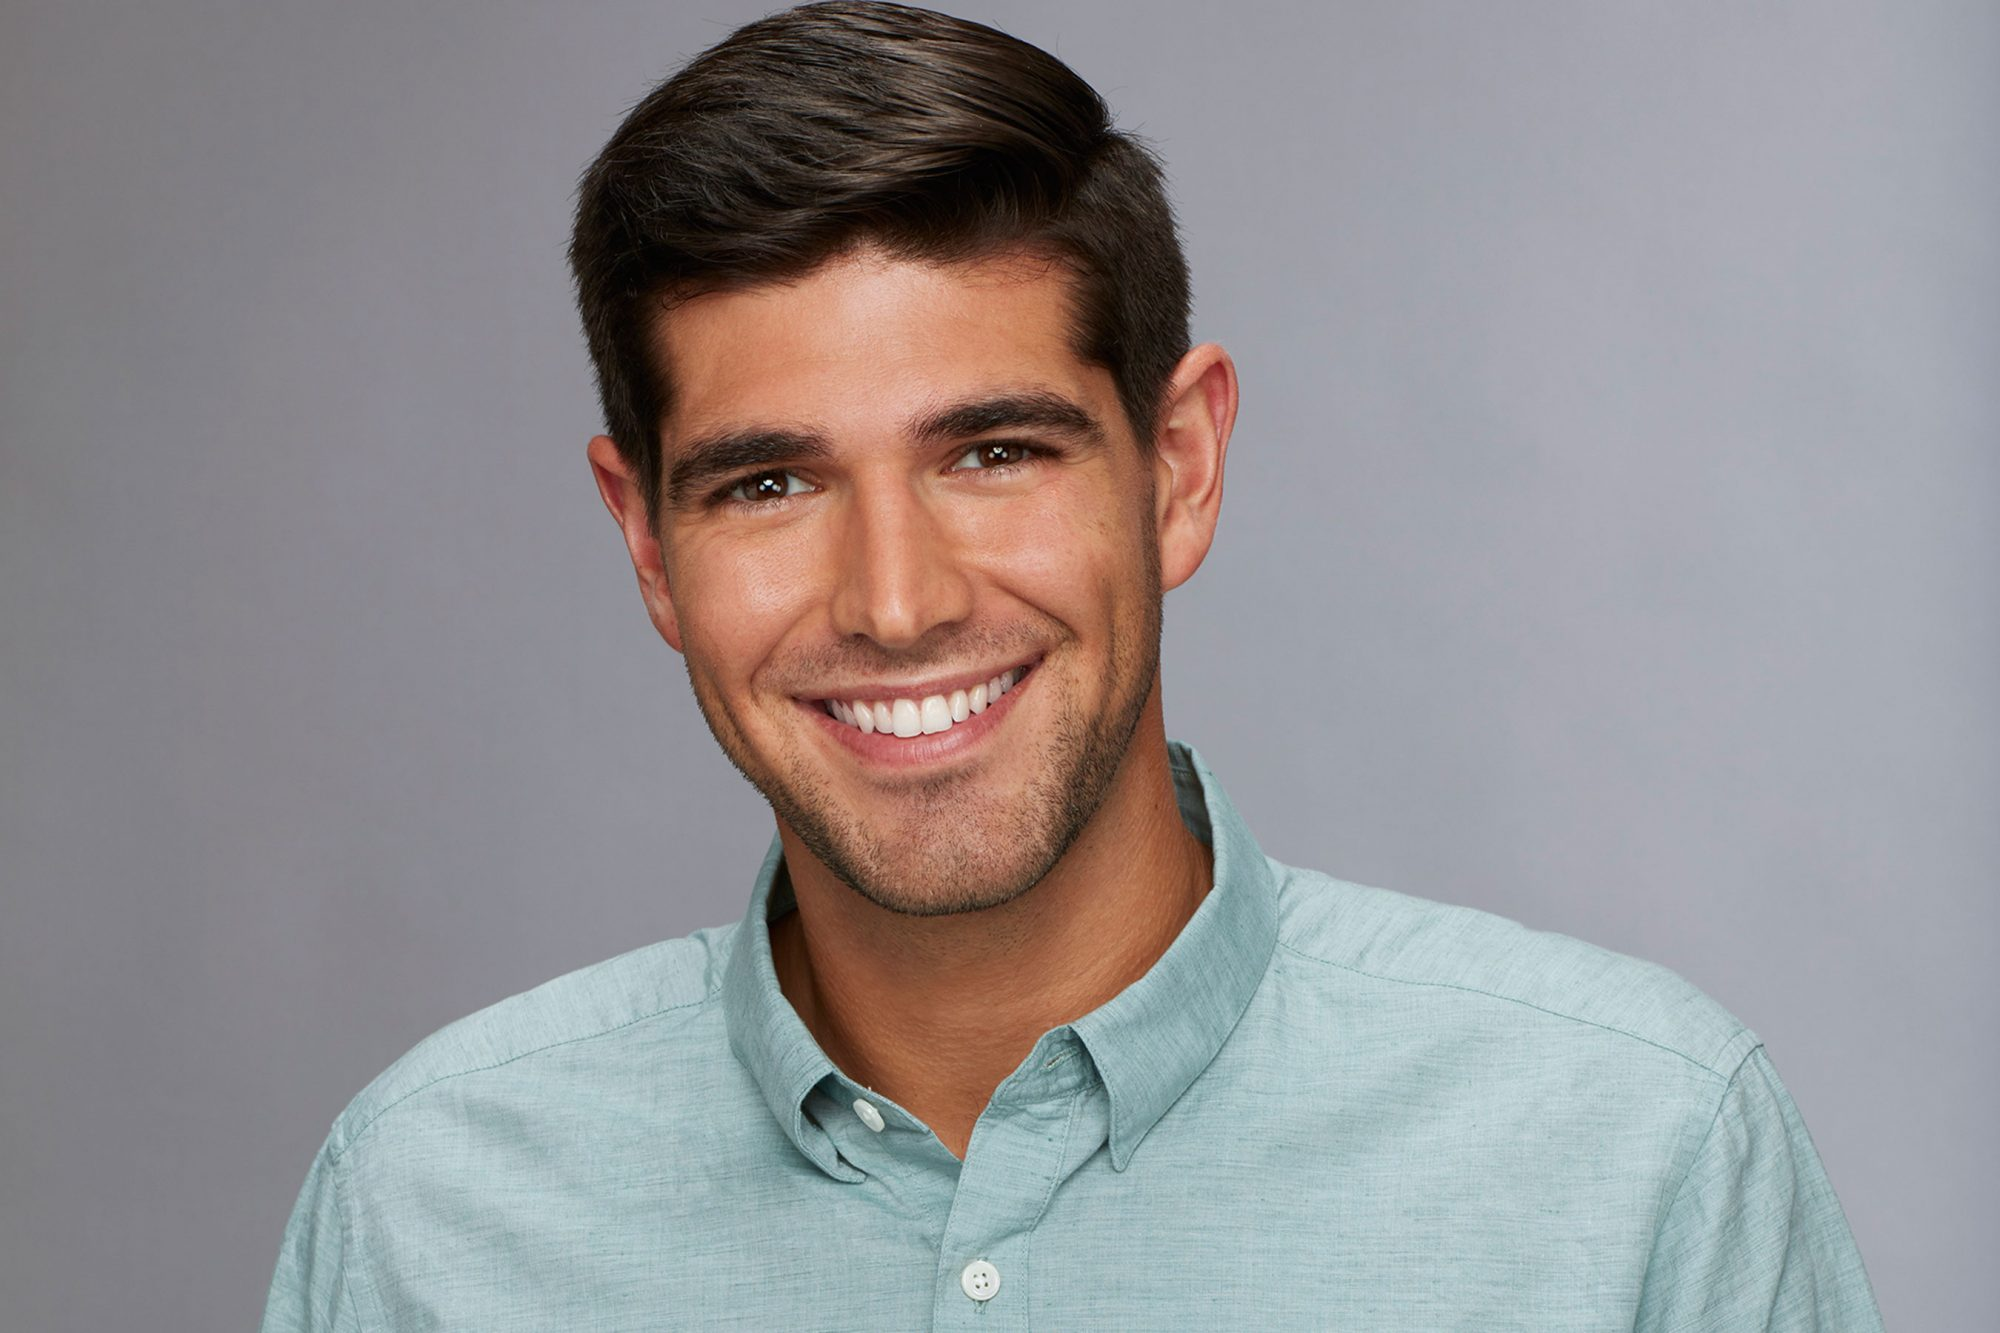 """Banjoist,"" Ryan on season 14 of The Bachelorette"